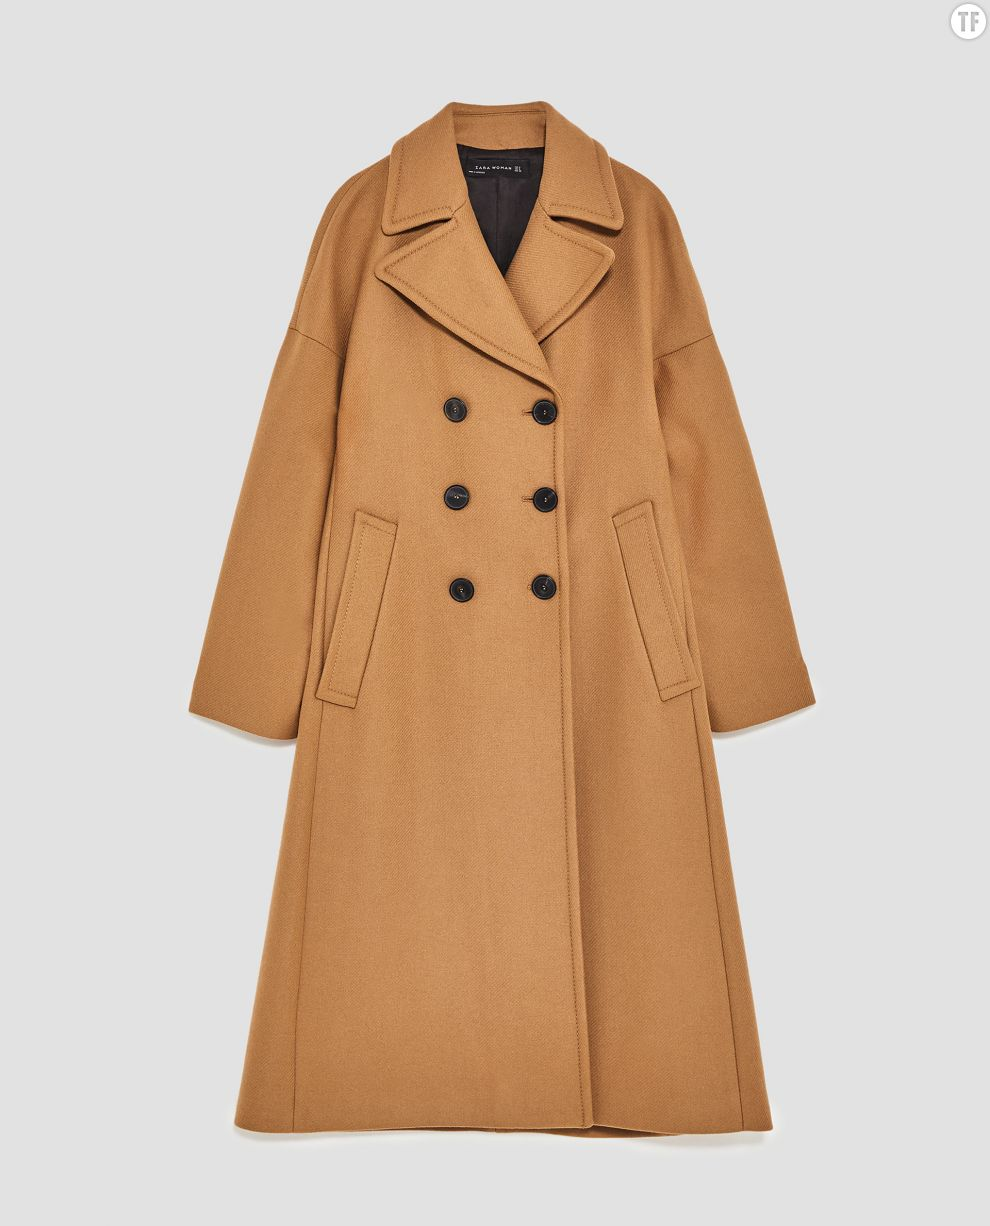 Manteau long camel Zara, 139€